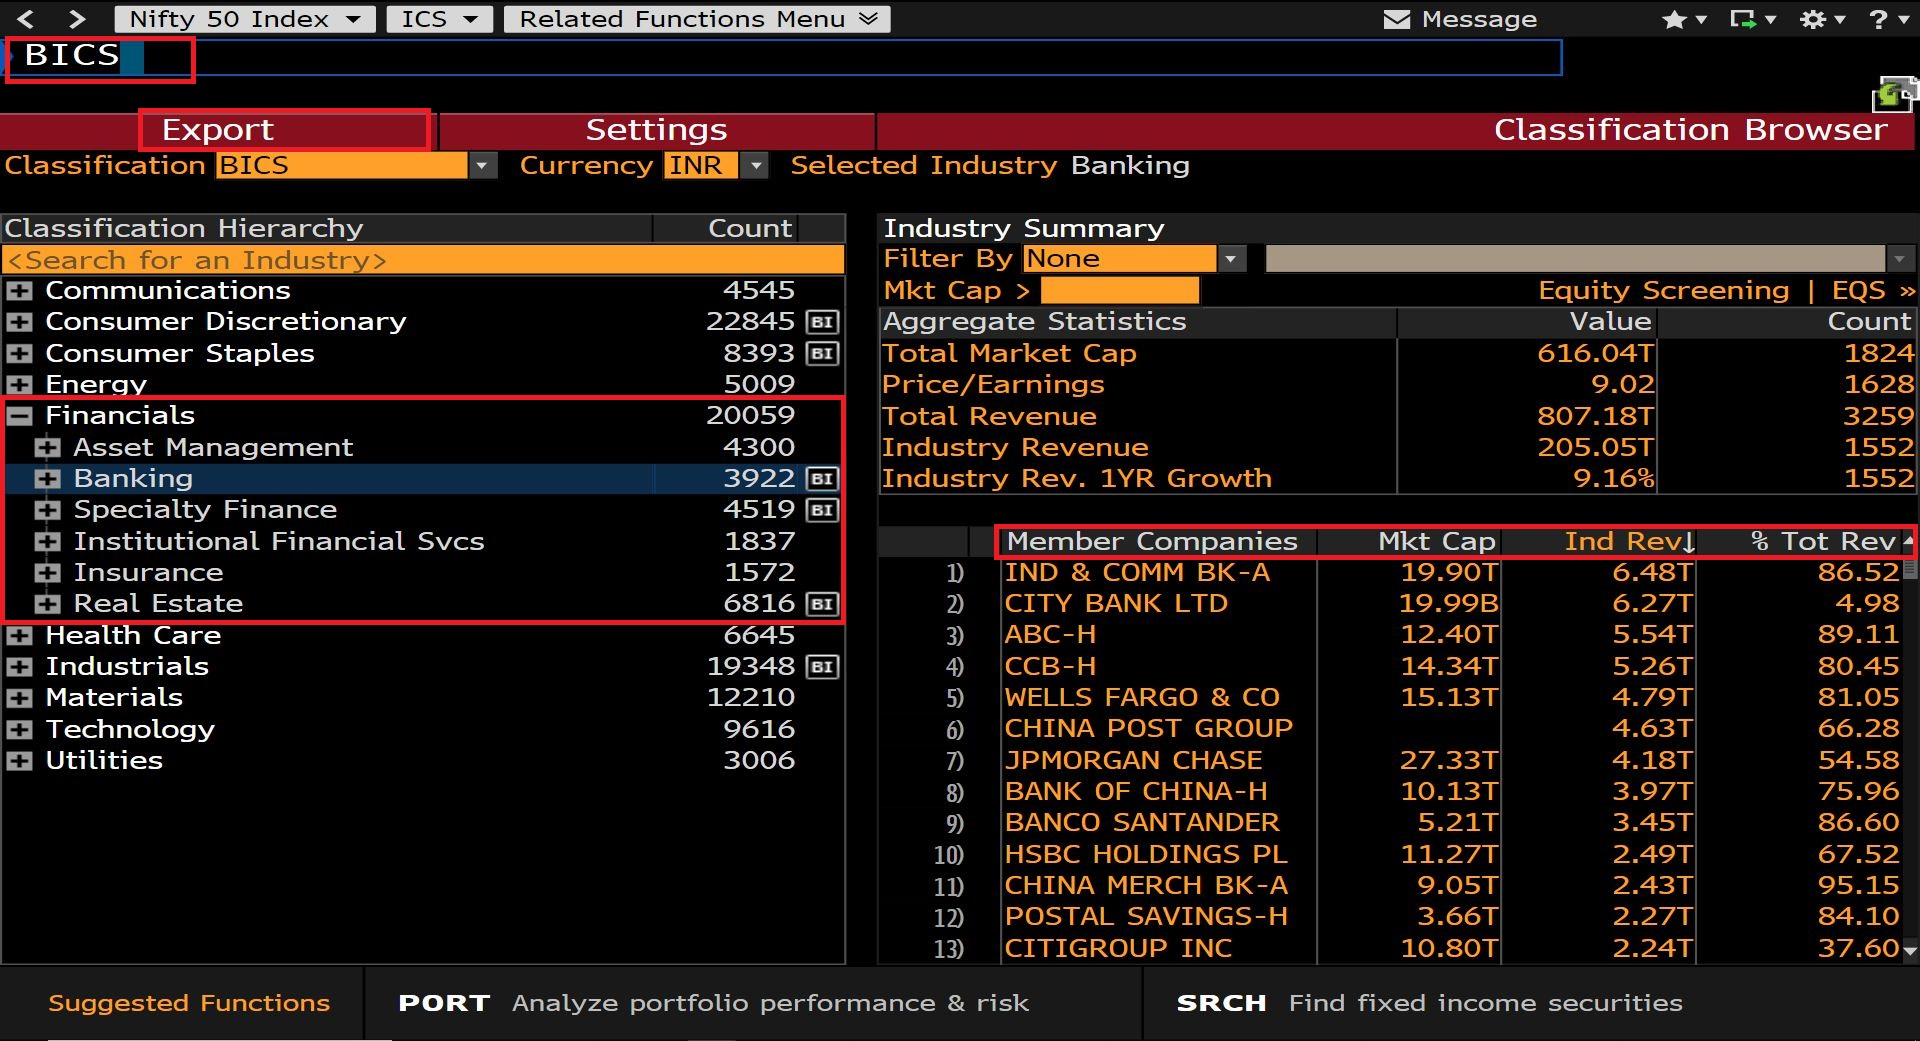 Login to Bloomberg (Available in Library) then Search for BICS and Select Financials and Select Required Industry